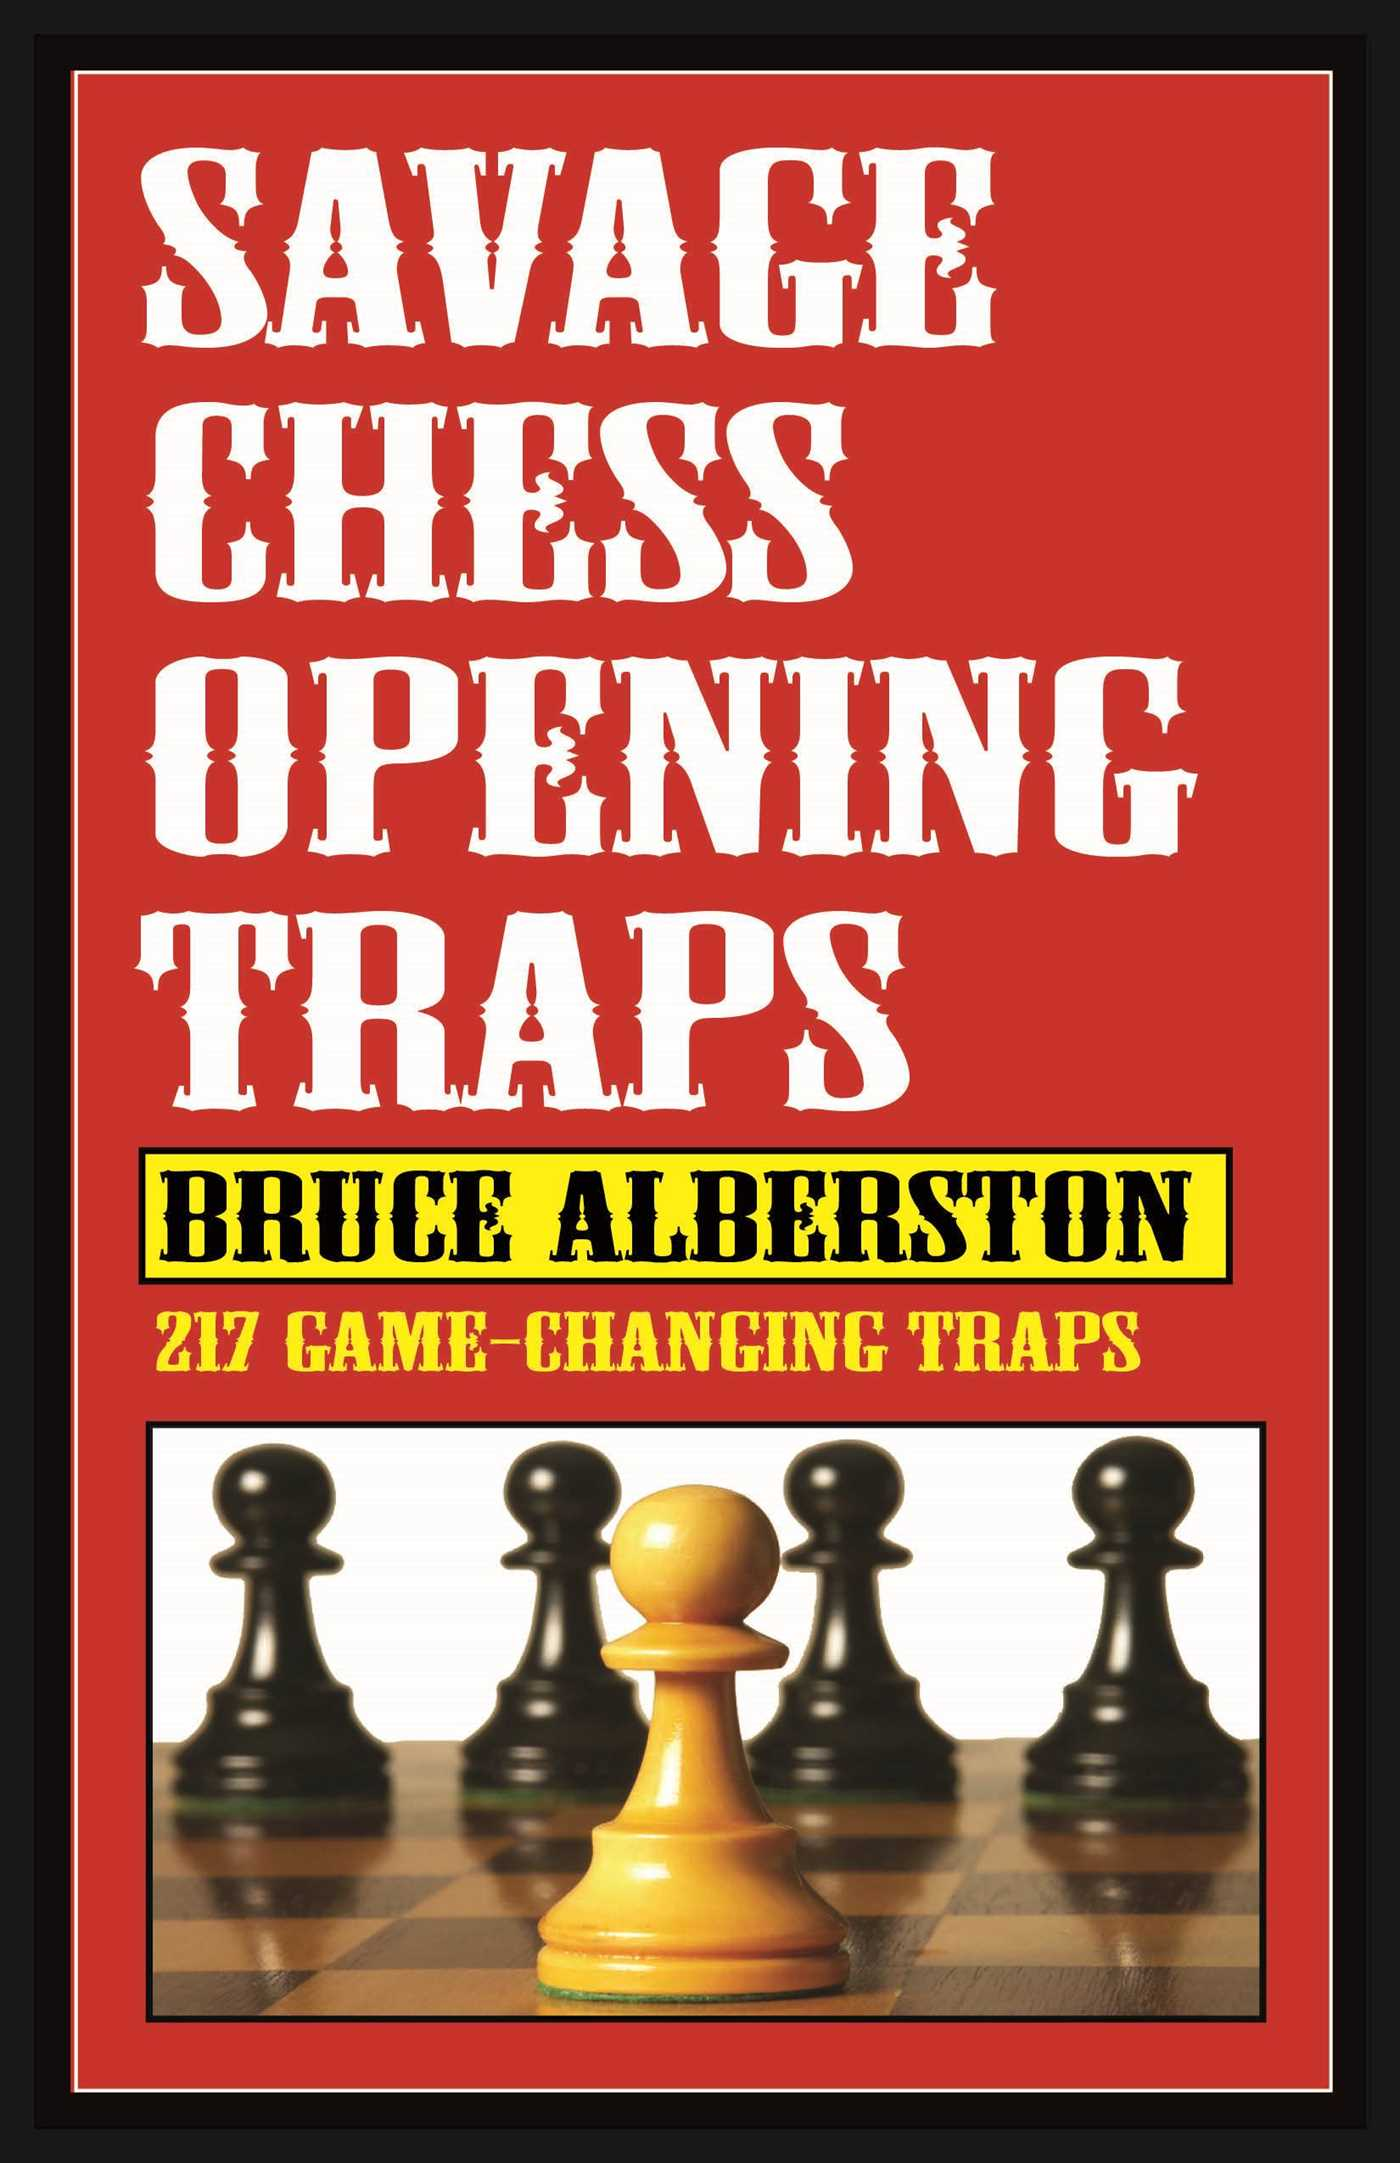 Savage chess openings traps 9781580423540 hr